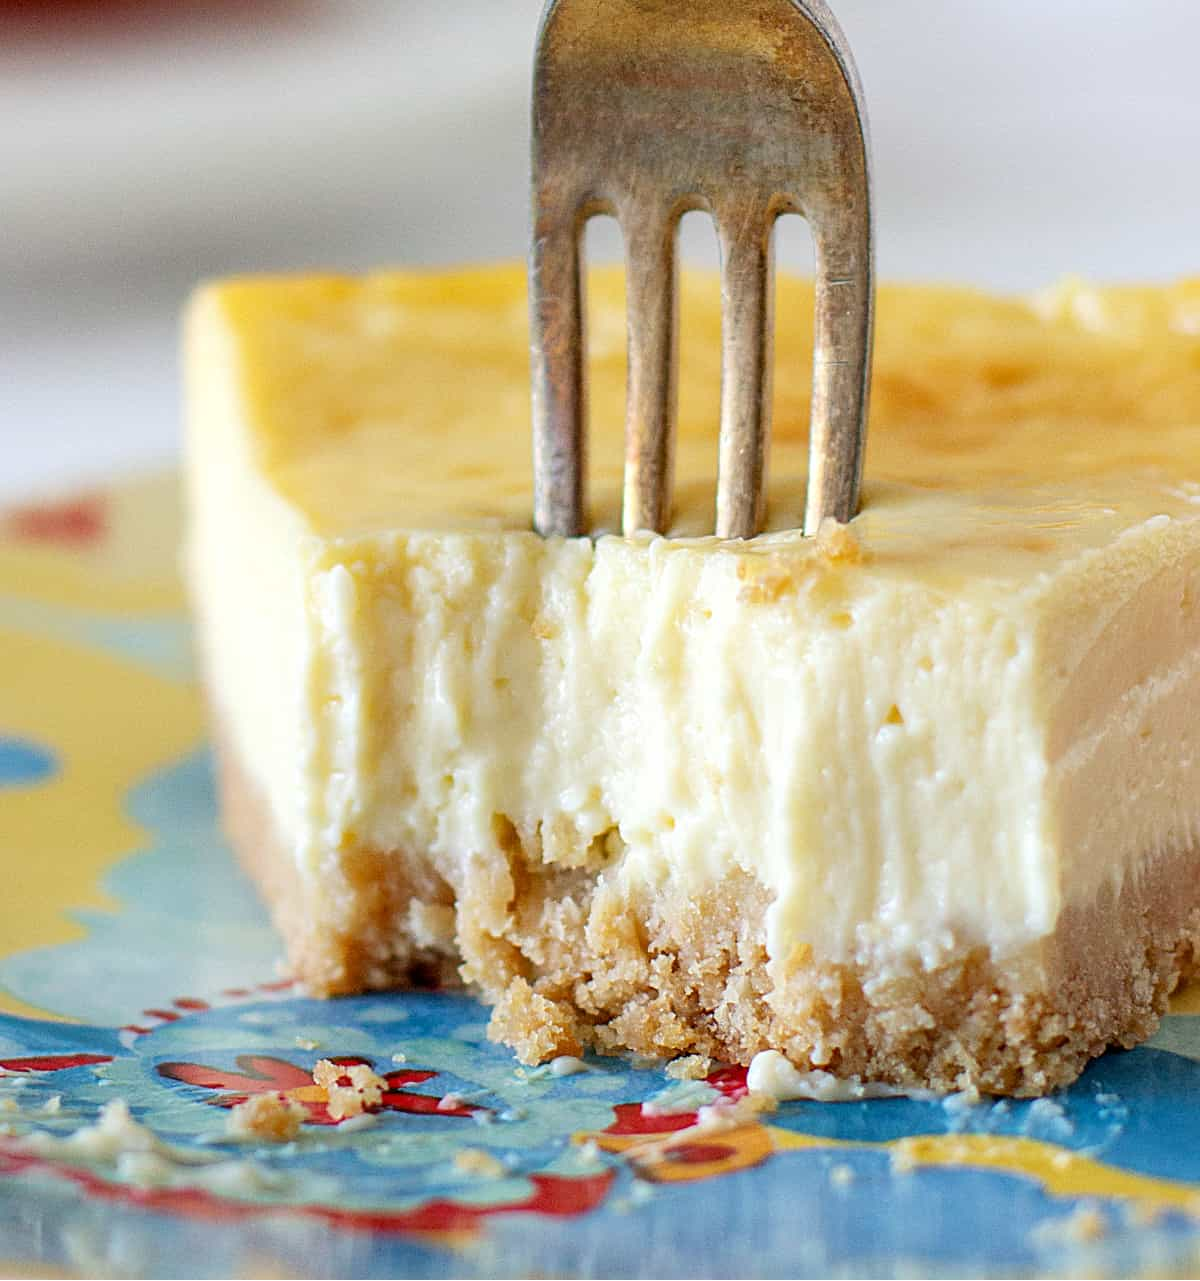 A fork plunged on a plain slice of cheesecake, colorful plate, close up image